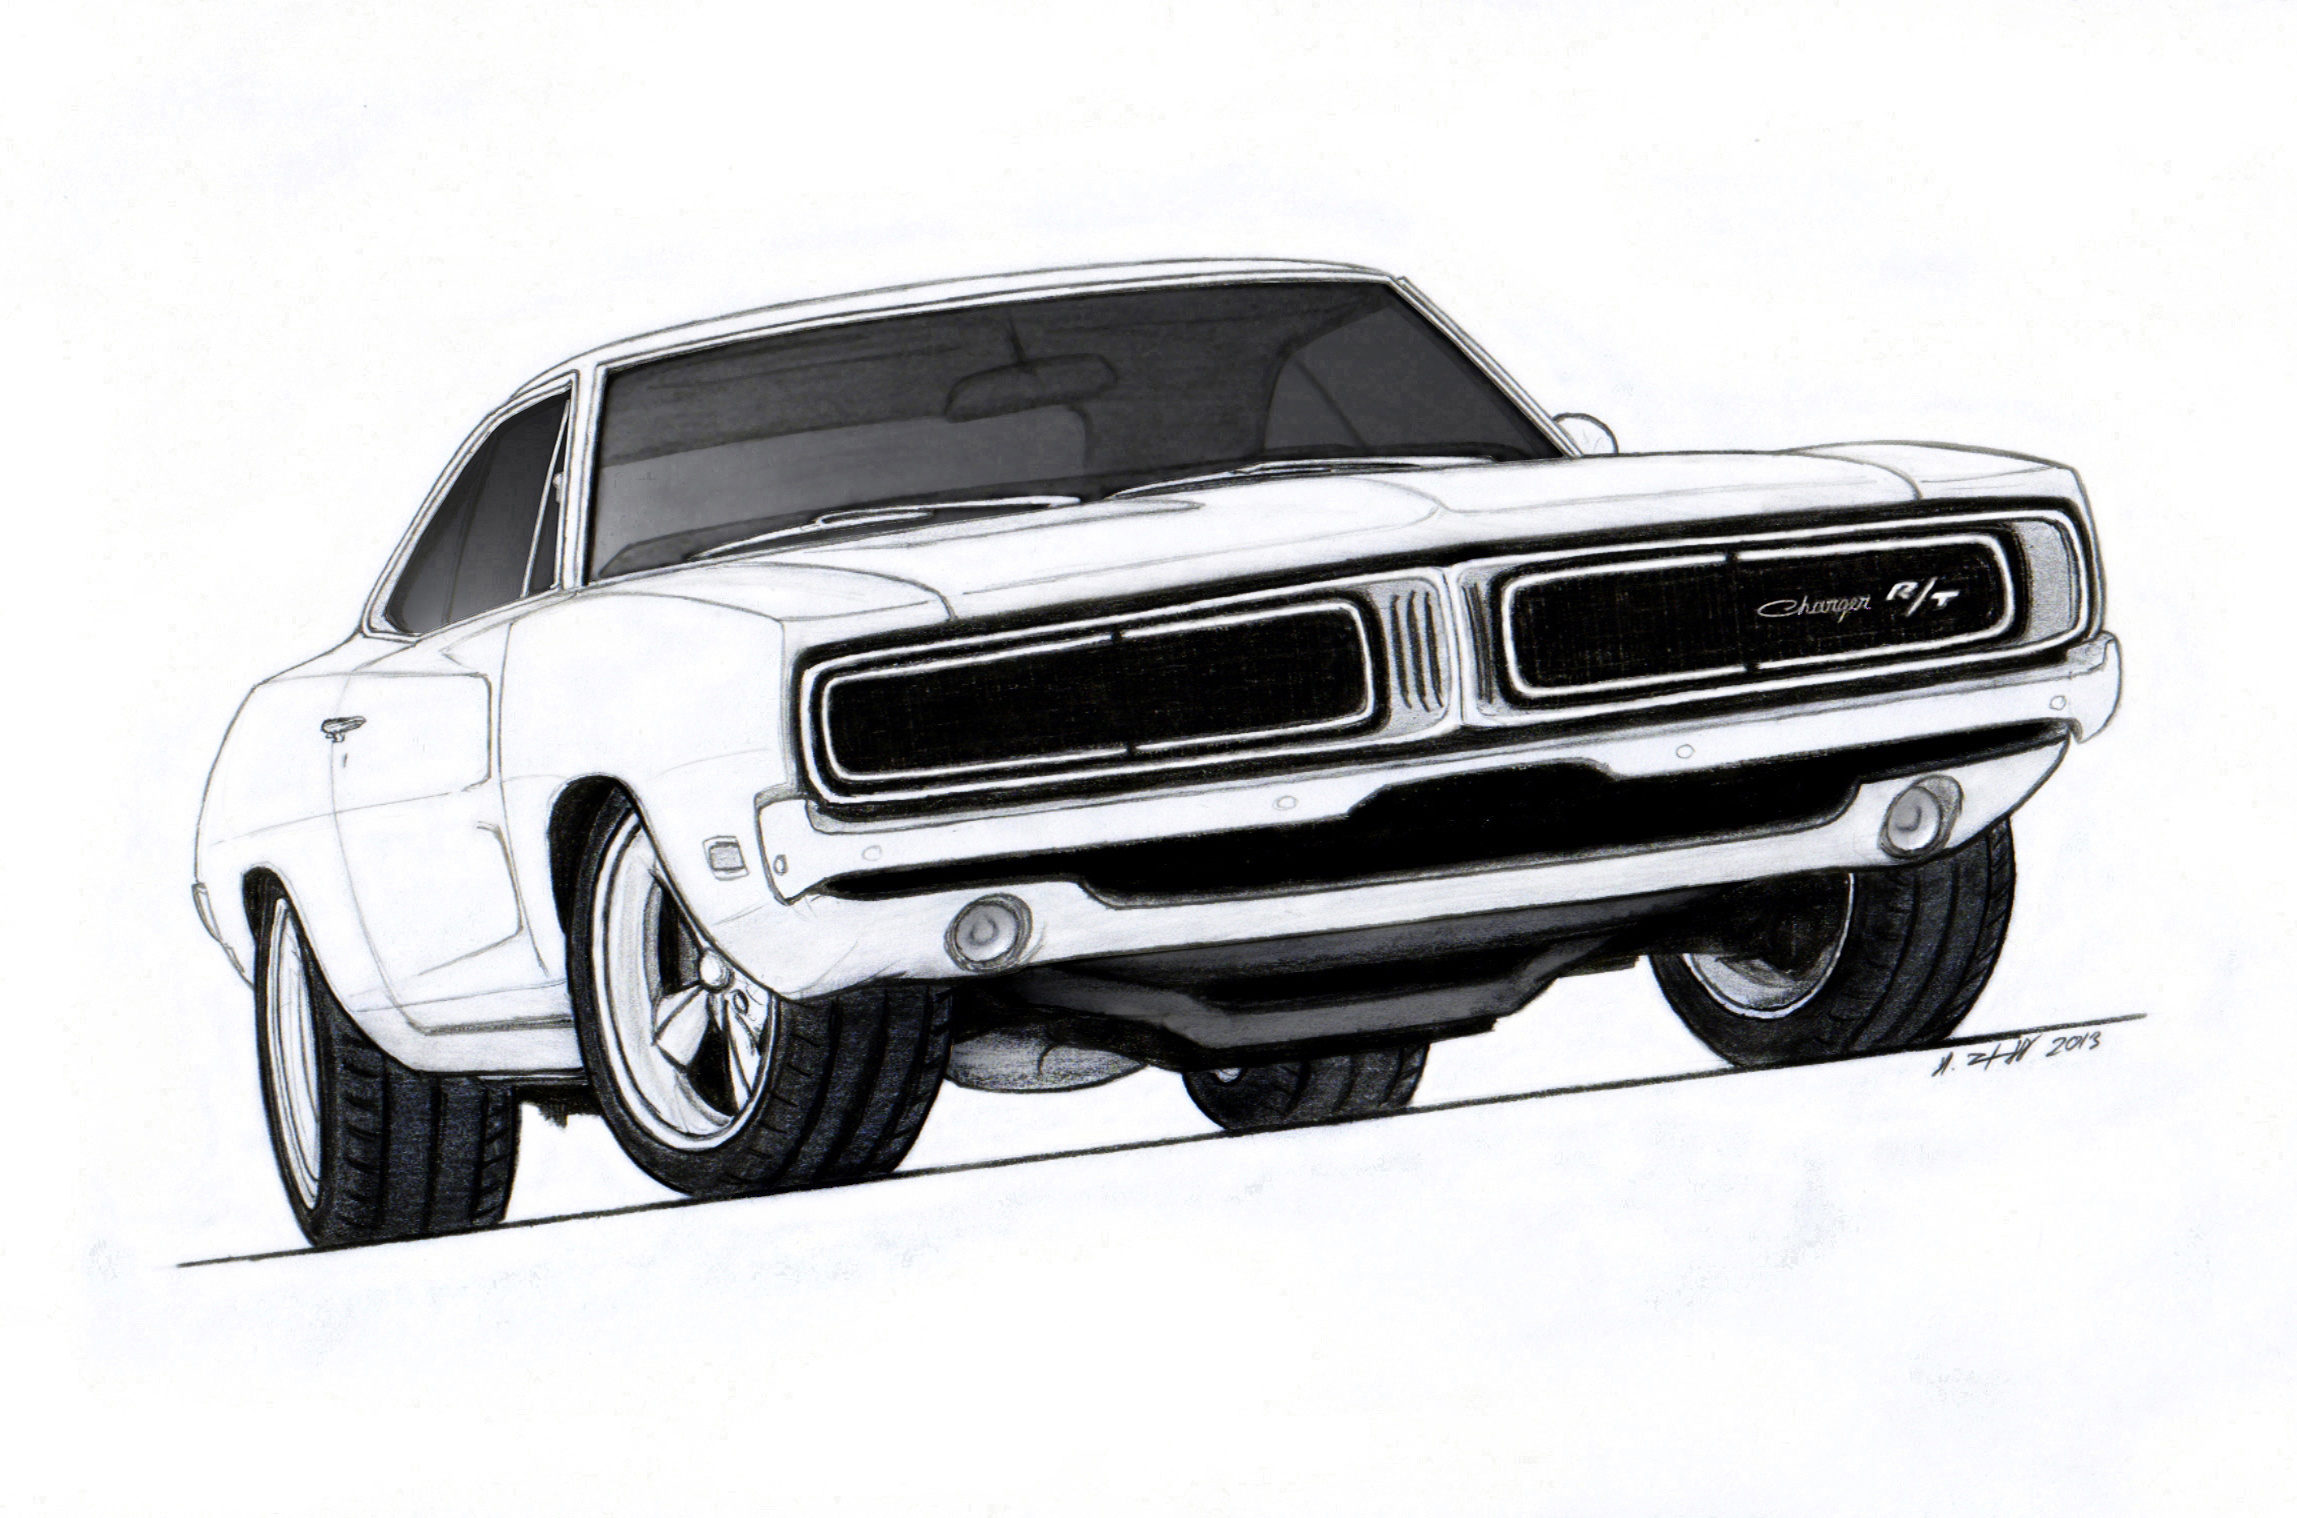 Camaro Del 68 >> 1969 Dodge Charger R/T Pro Touring Drawing by Vertualissimo on DeviantArt